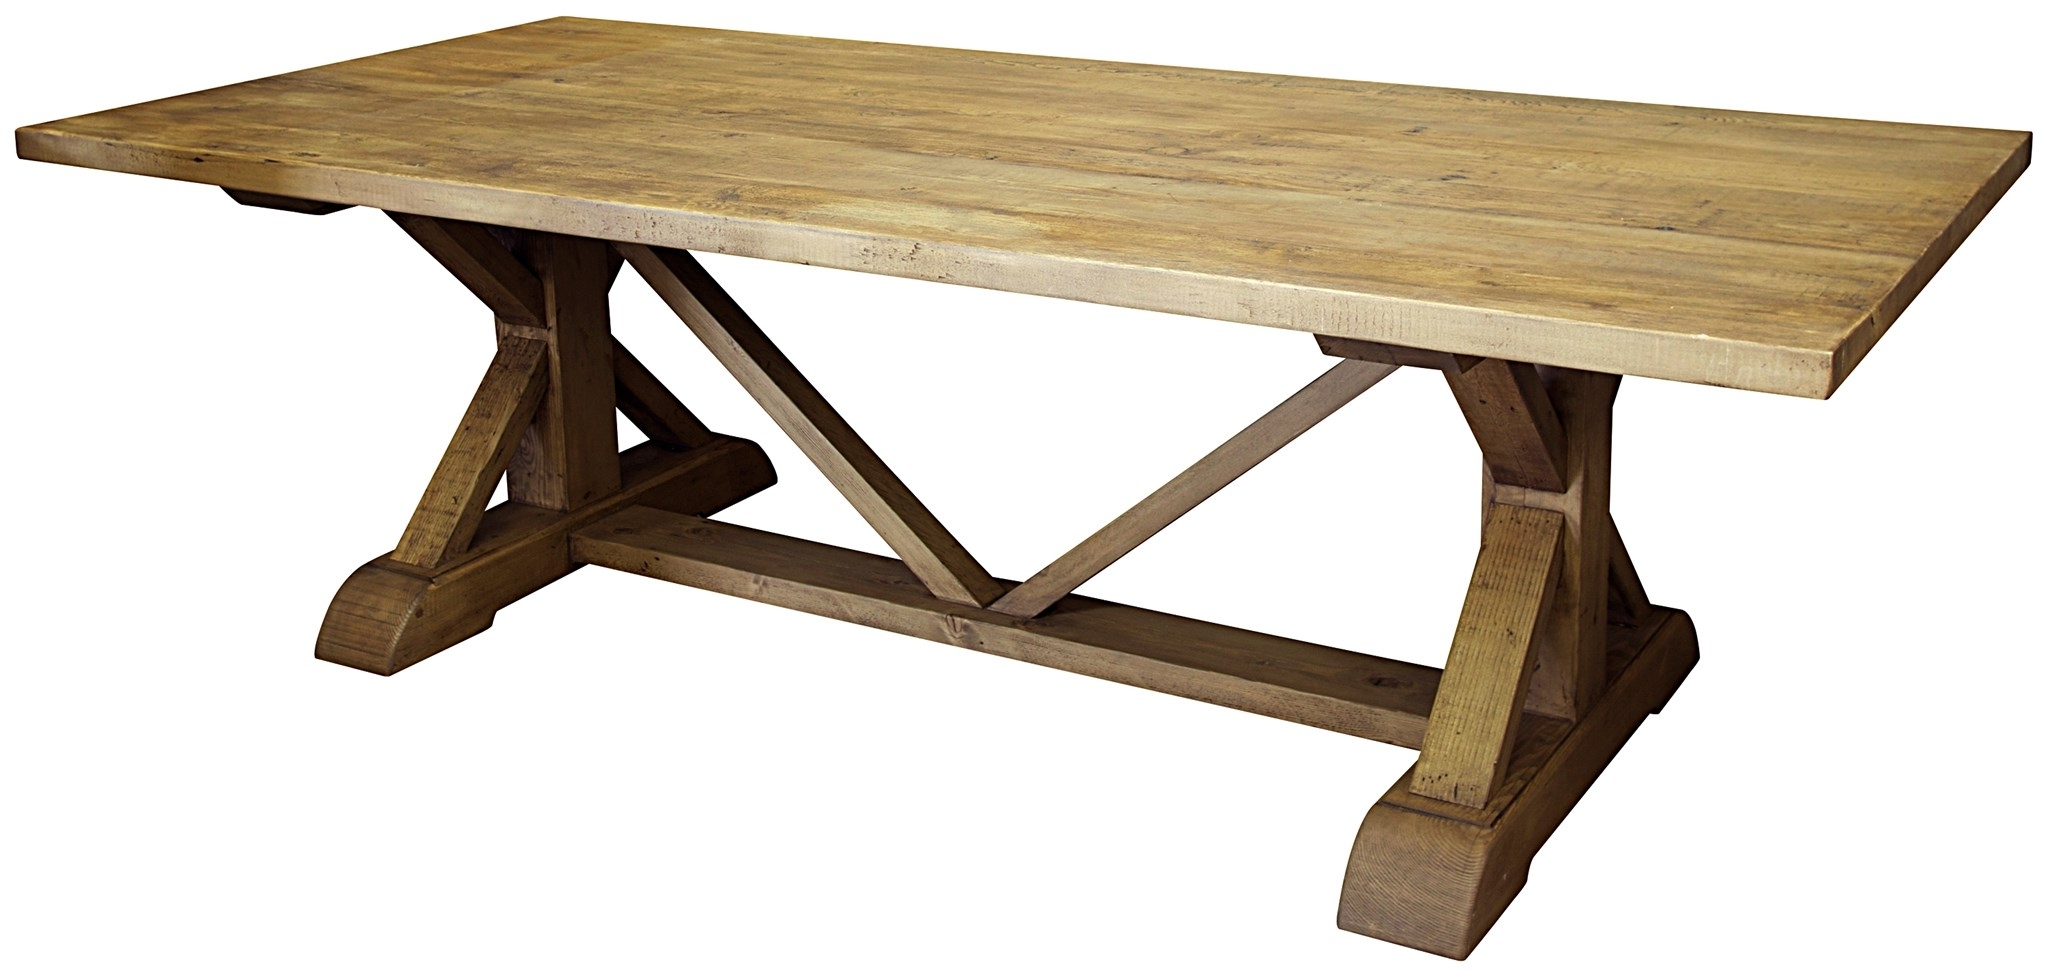 Trendy Cfc :: With Regard To Cheap Reclaimed Wood Dining Tables (View 18 of 25)